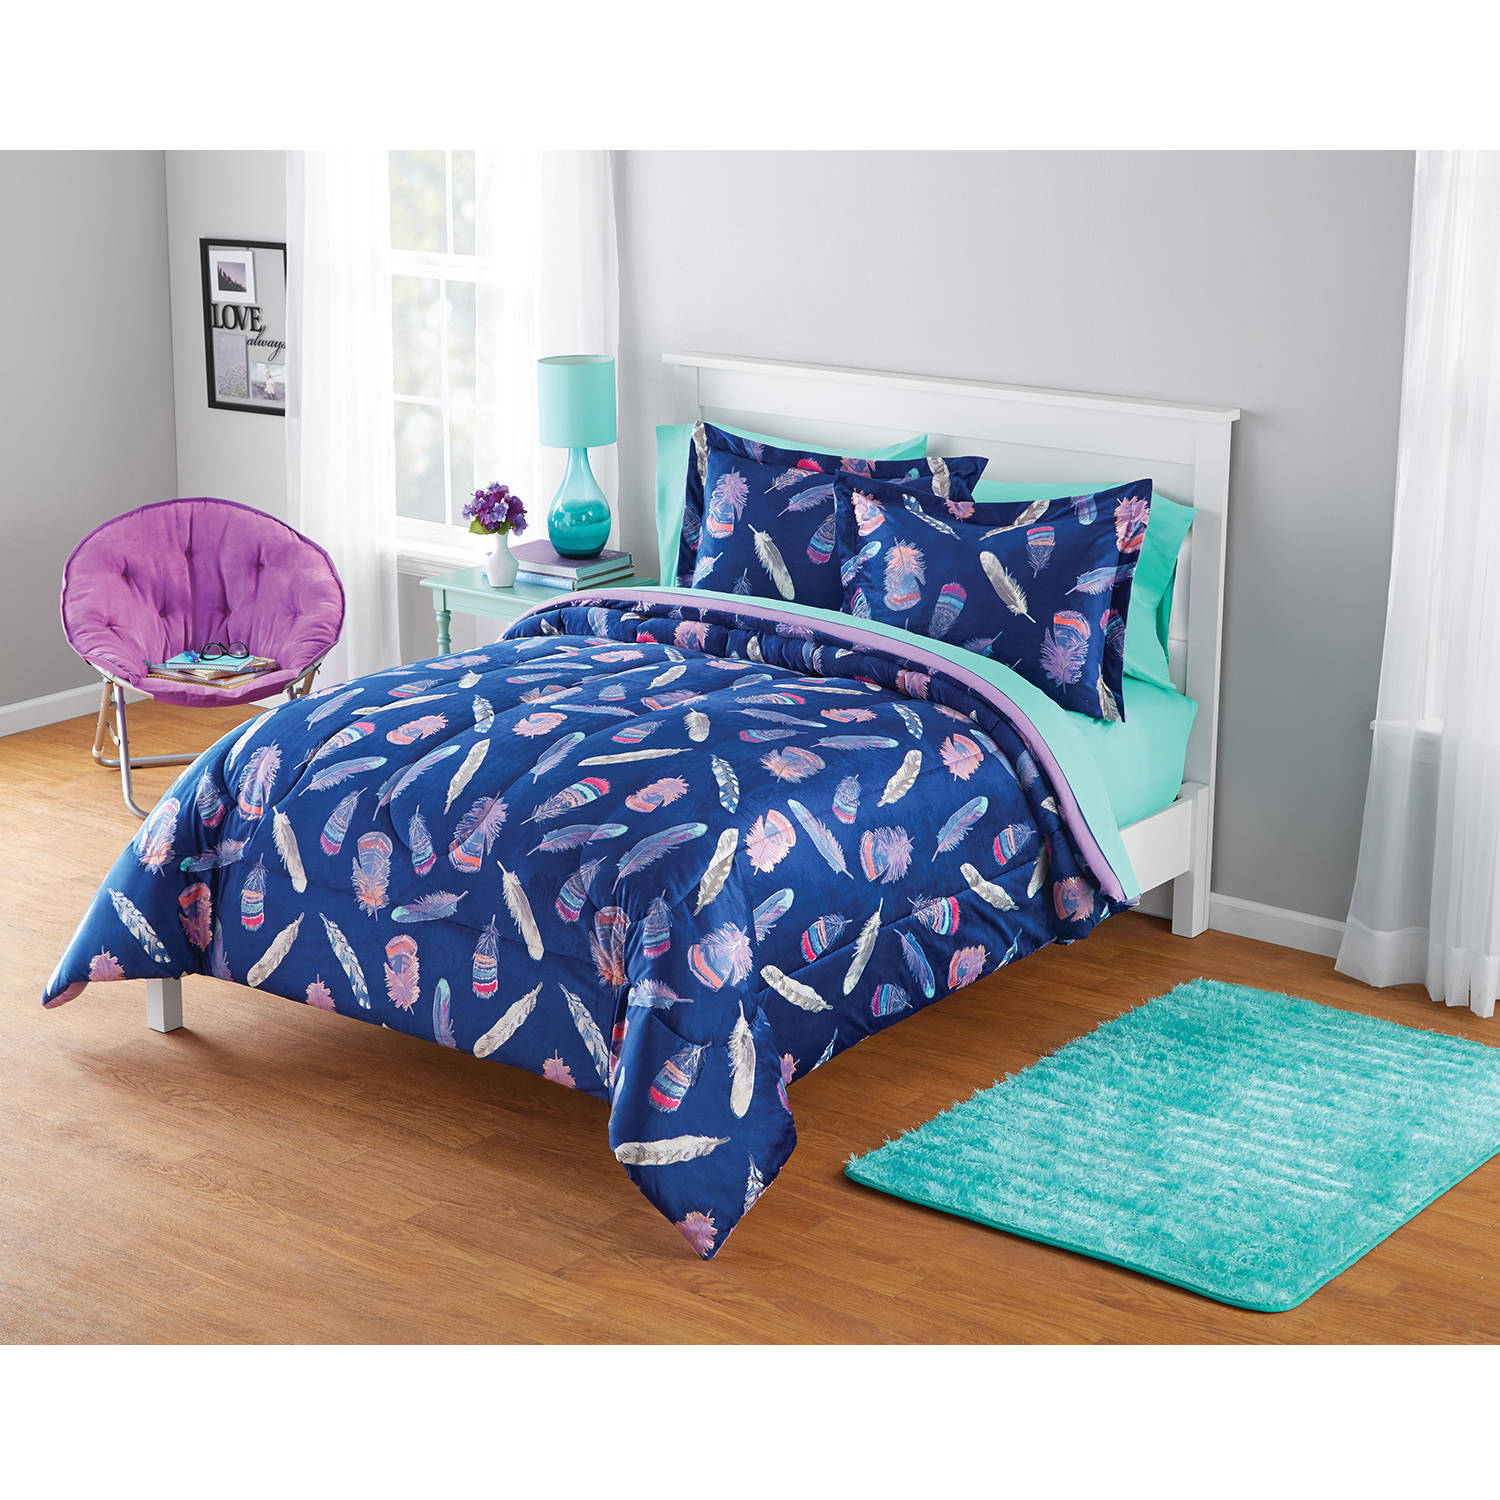 Black and white bedding walmart - Black And White Bedding Walmart 30